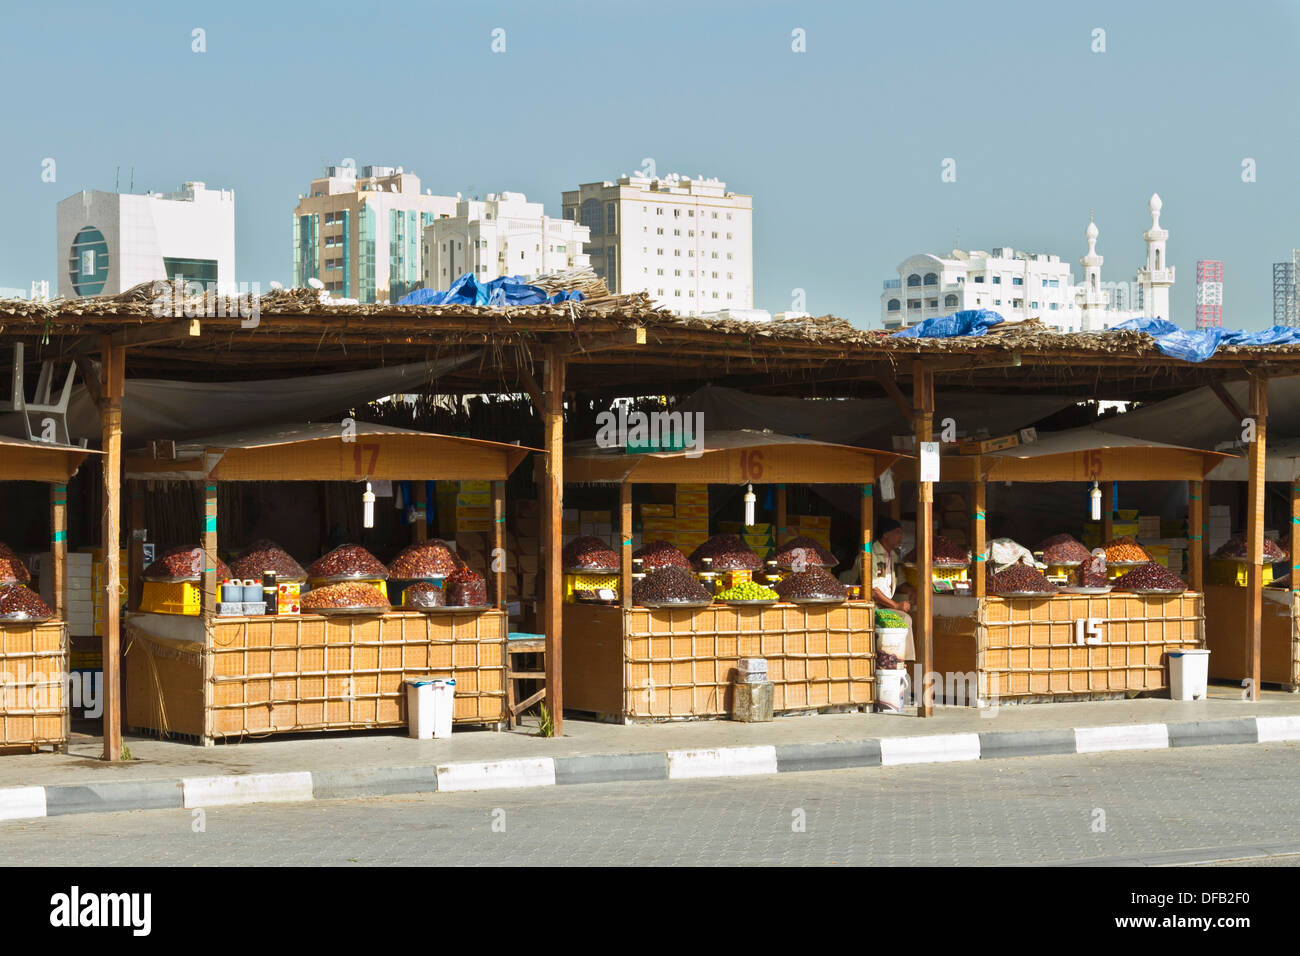 The Date Market In Sharjah Stock Photos & The Date Market In Sharjah